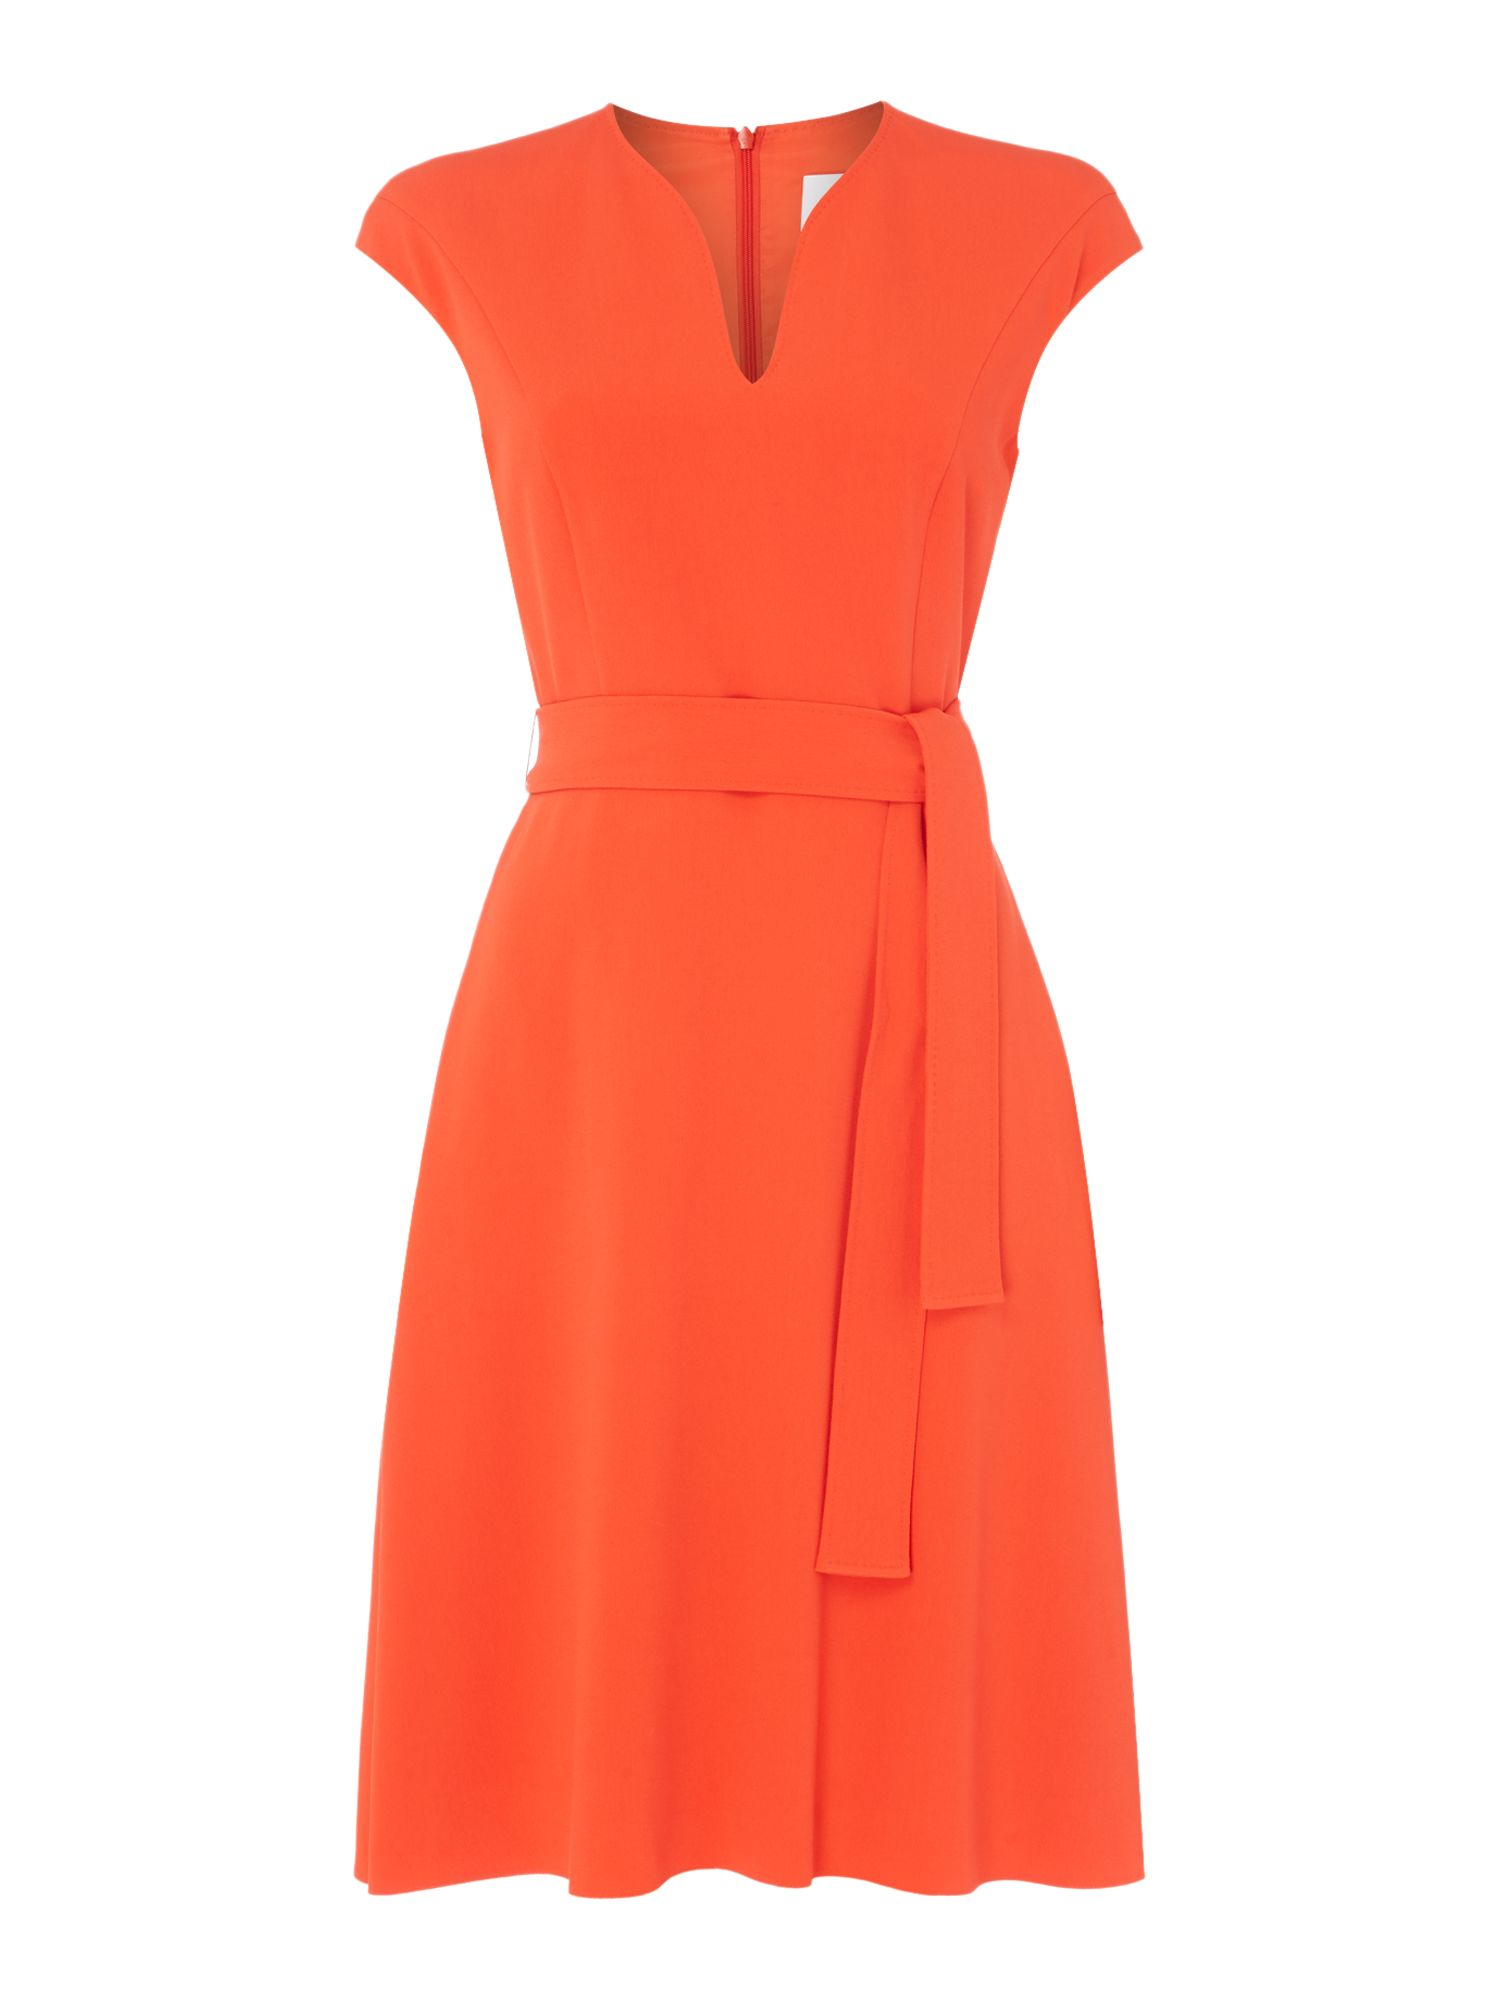 Hugo Boss Dilina V Neck Dress, Orange